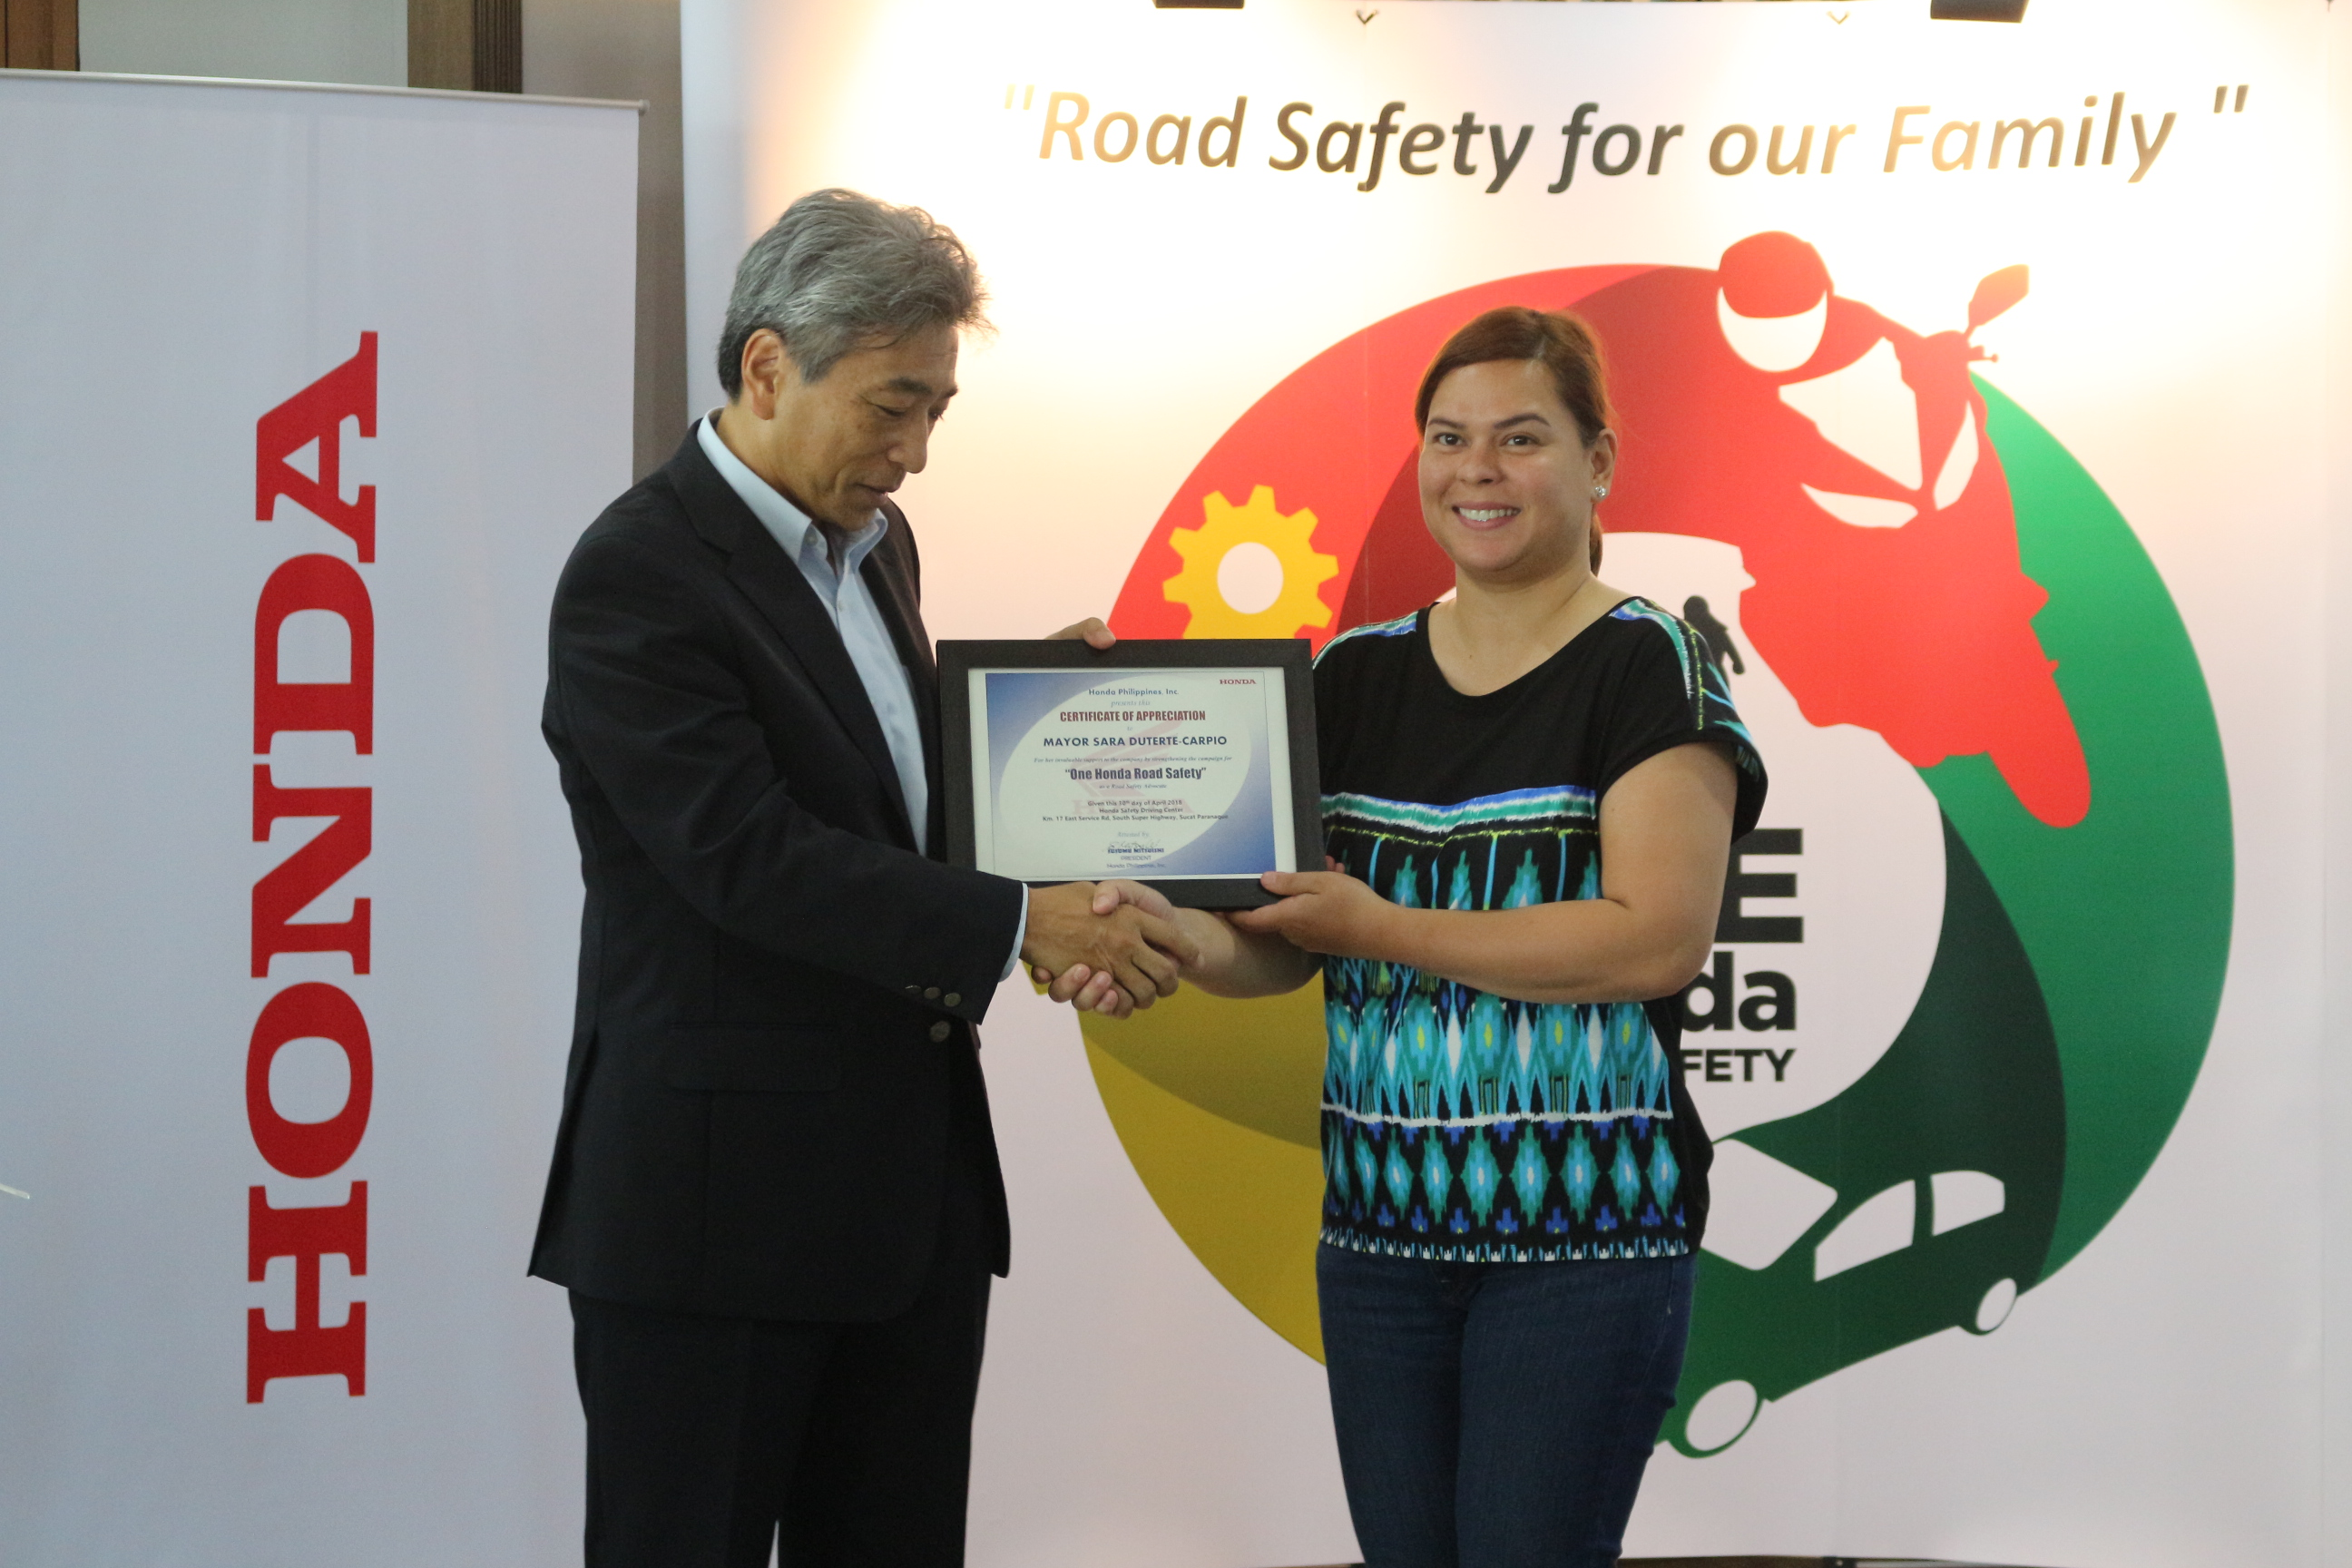 Sarah Duterte supports Road Safety Advocacy